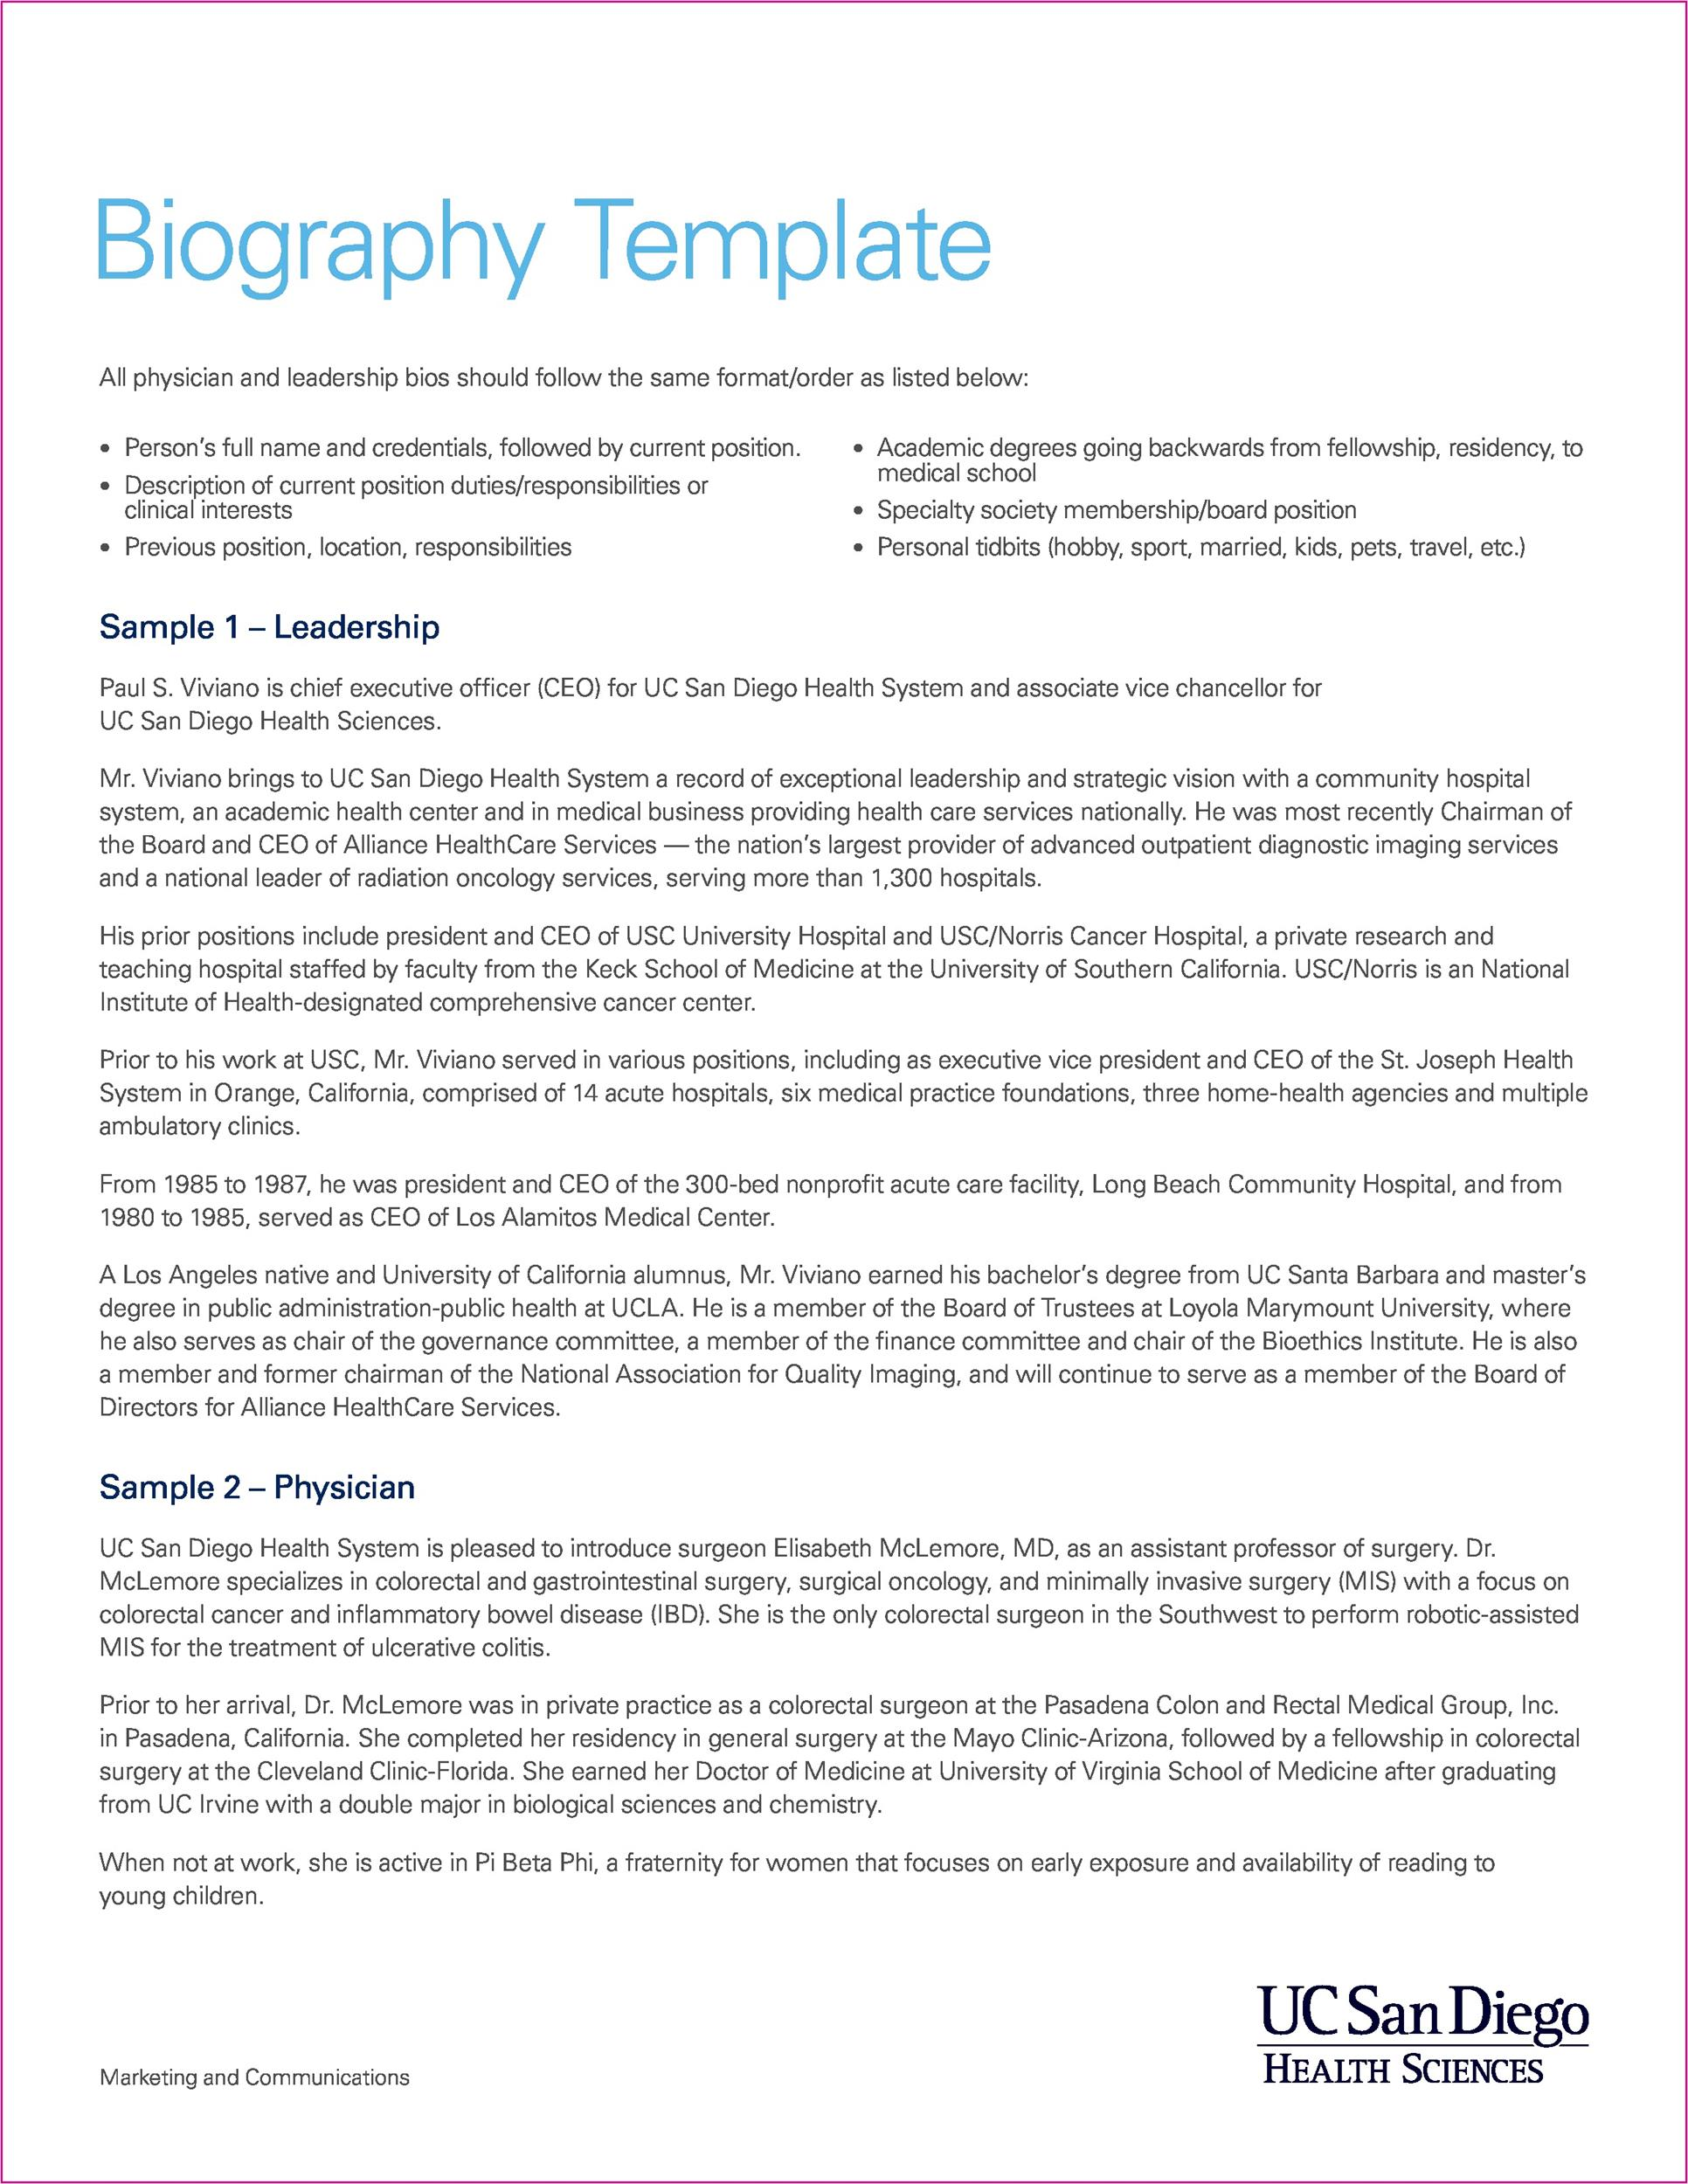 Biography Templates  Examples Personal Professional